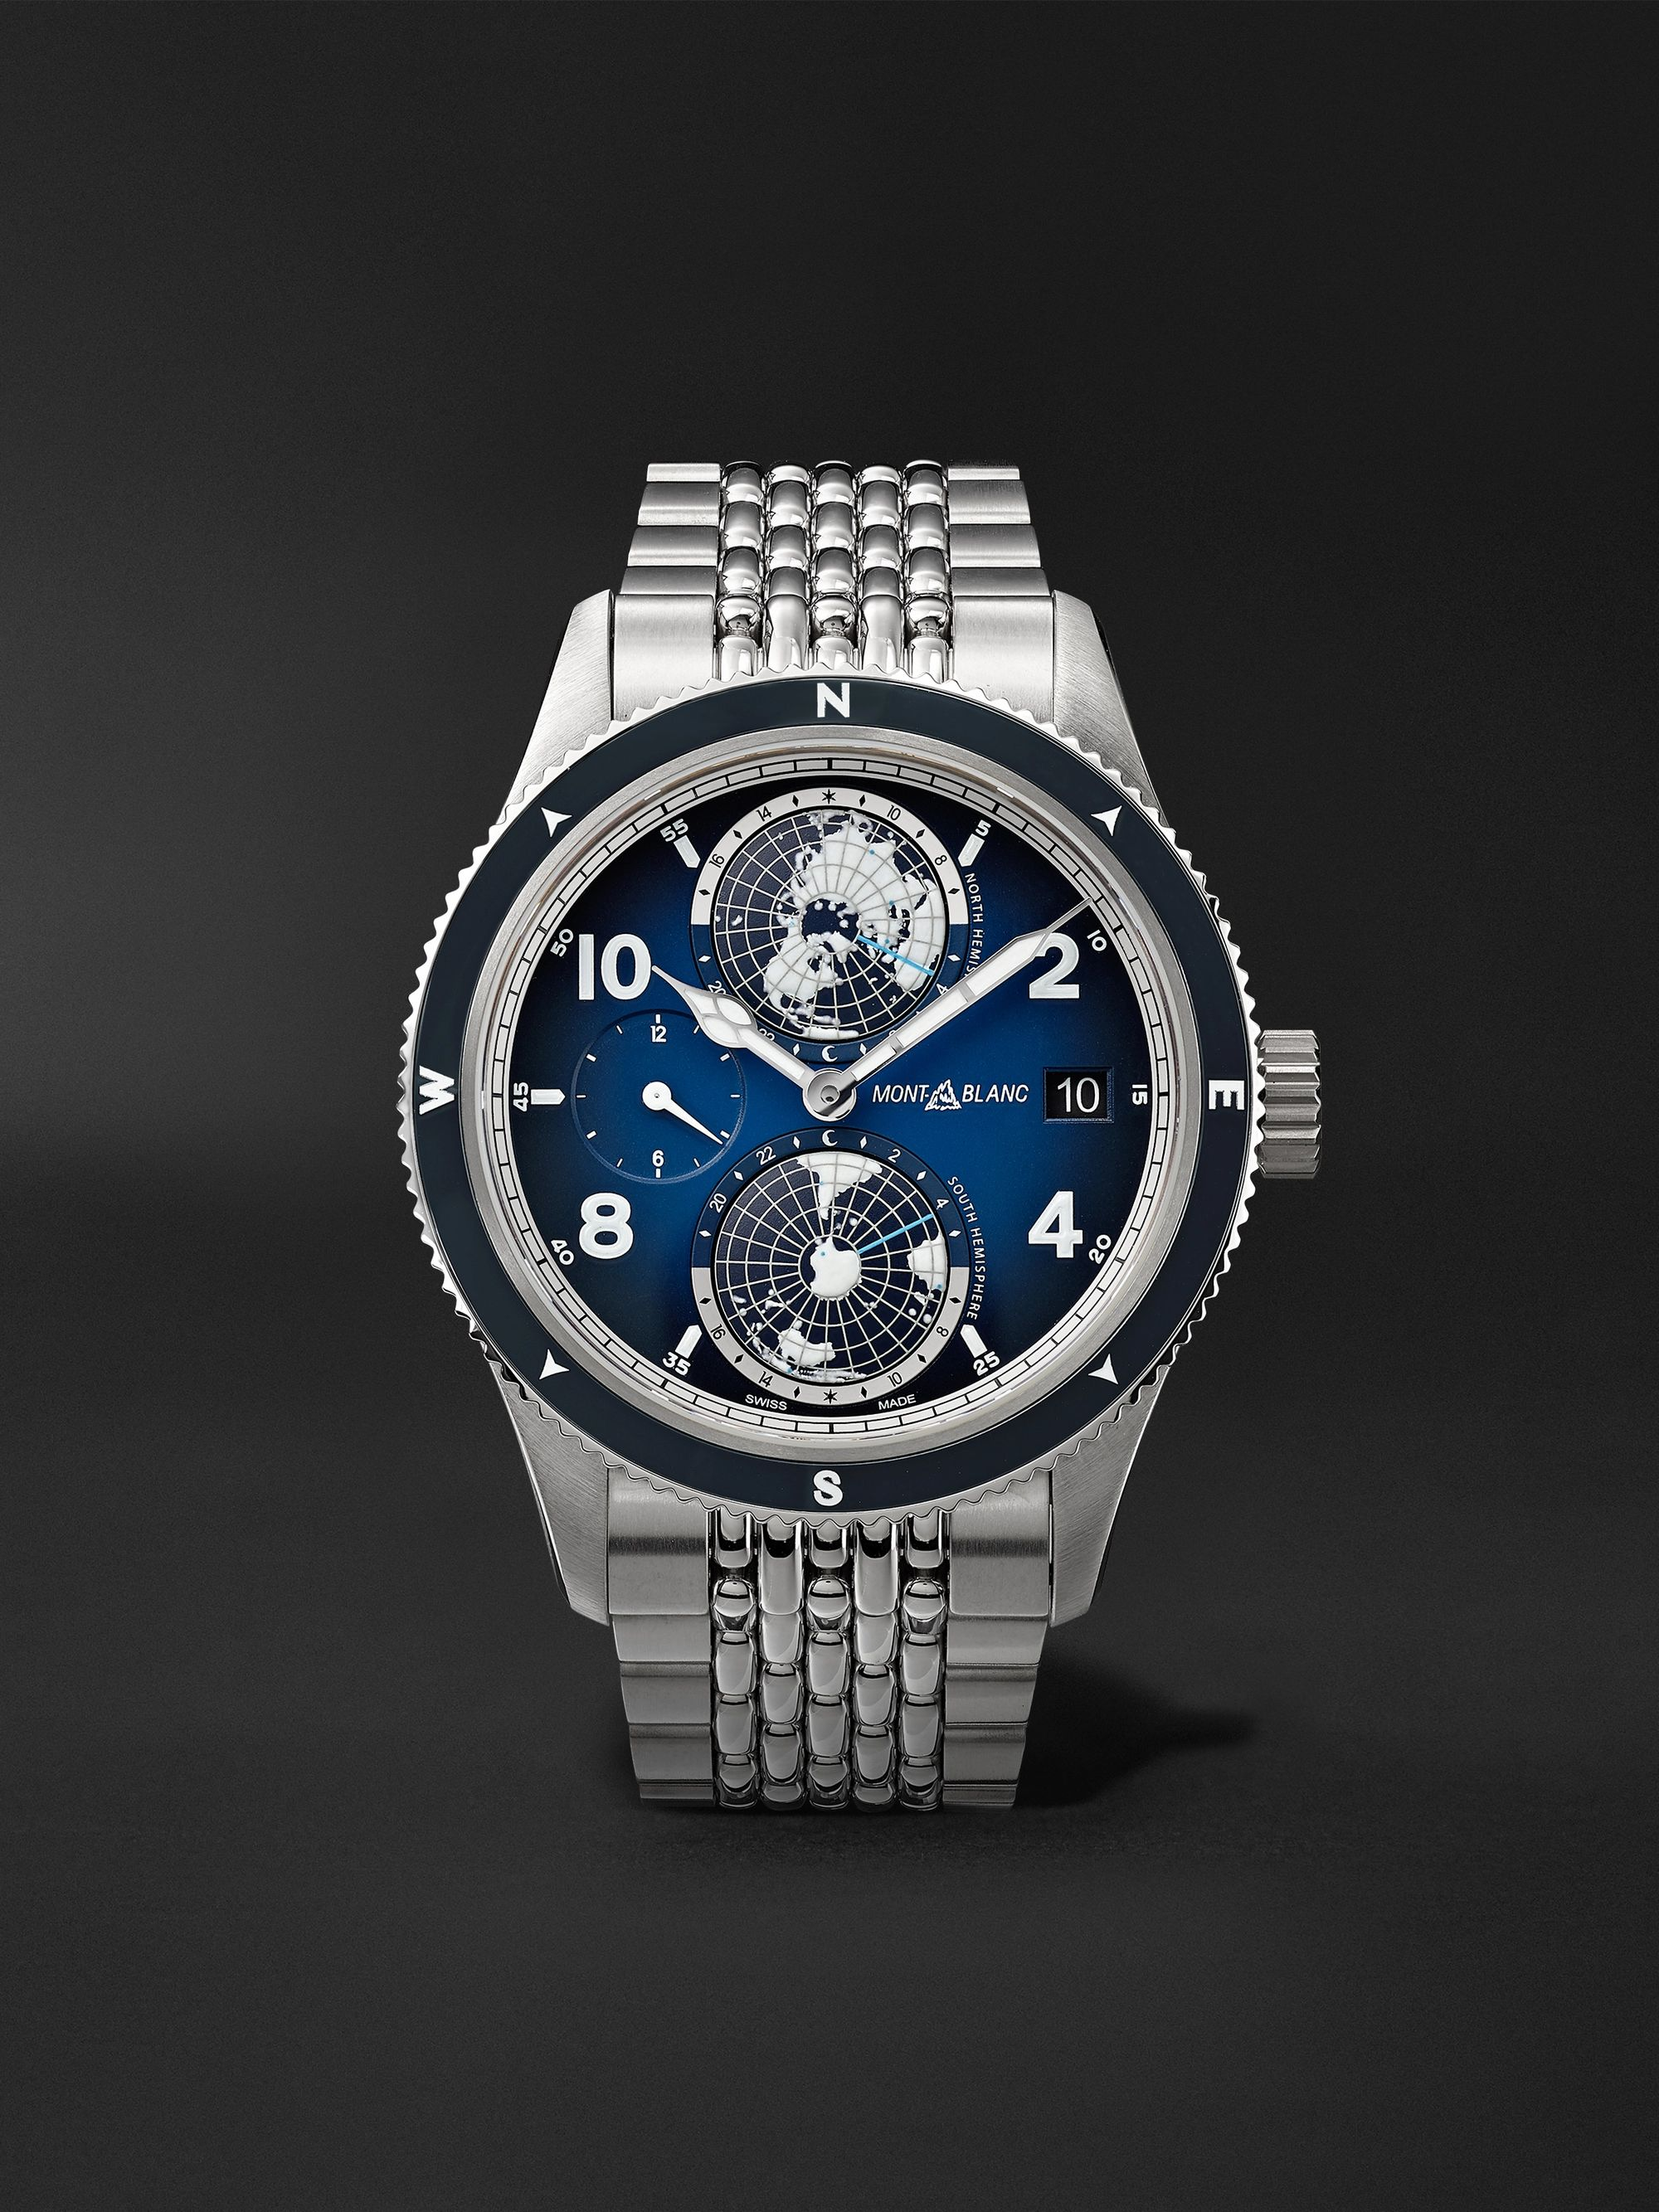 Montblanc 1858 Geosphere Automatic 42mm Titanium and Stainless Steel Watch, Ref. No. 125567